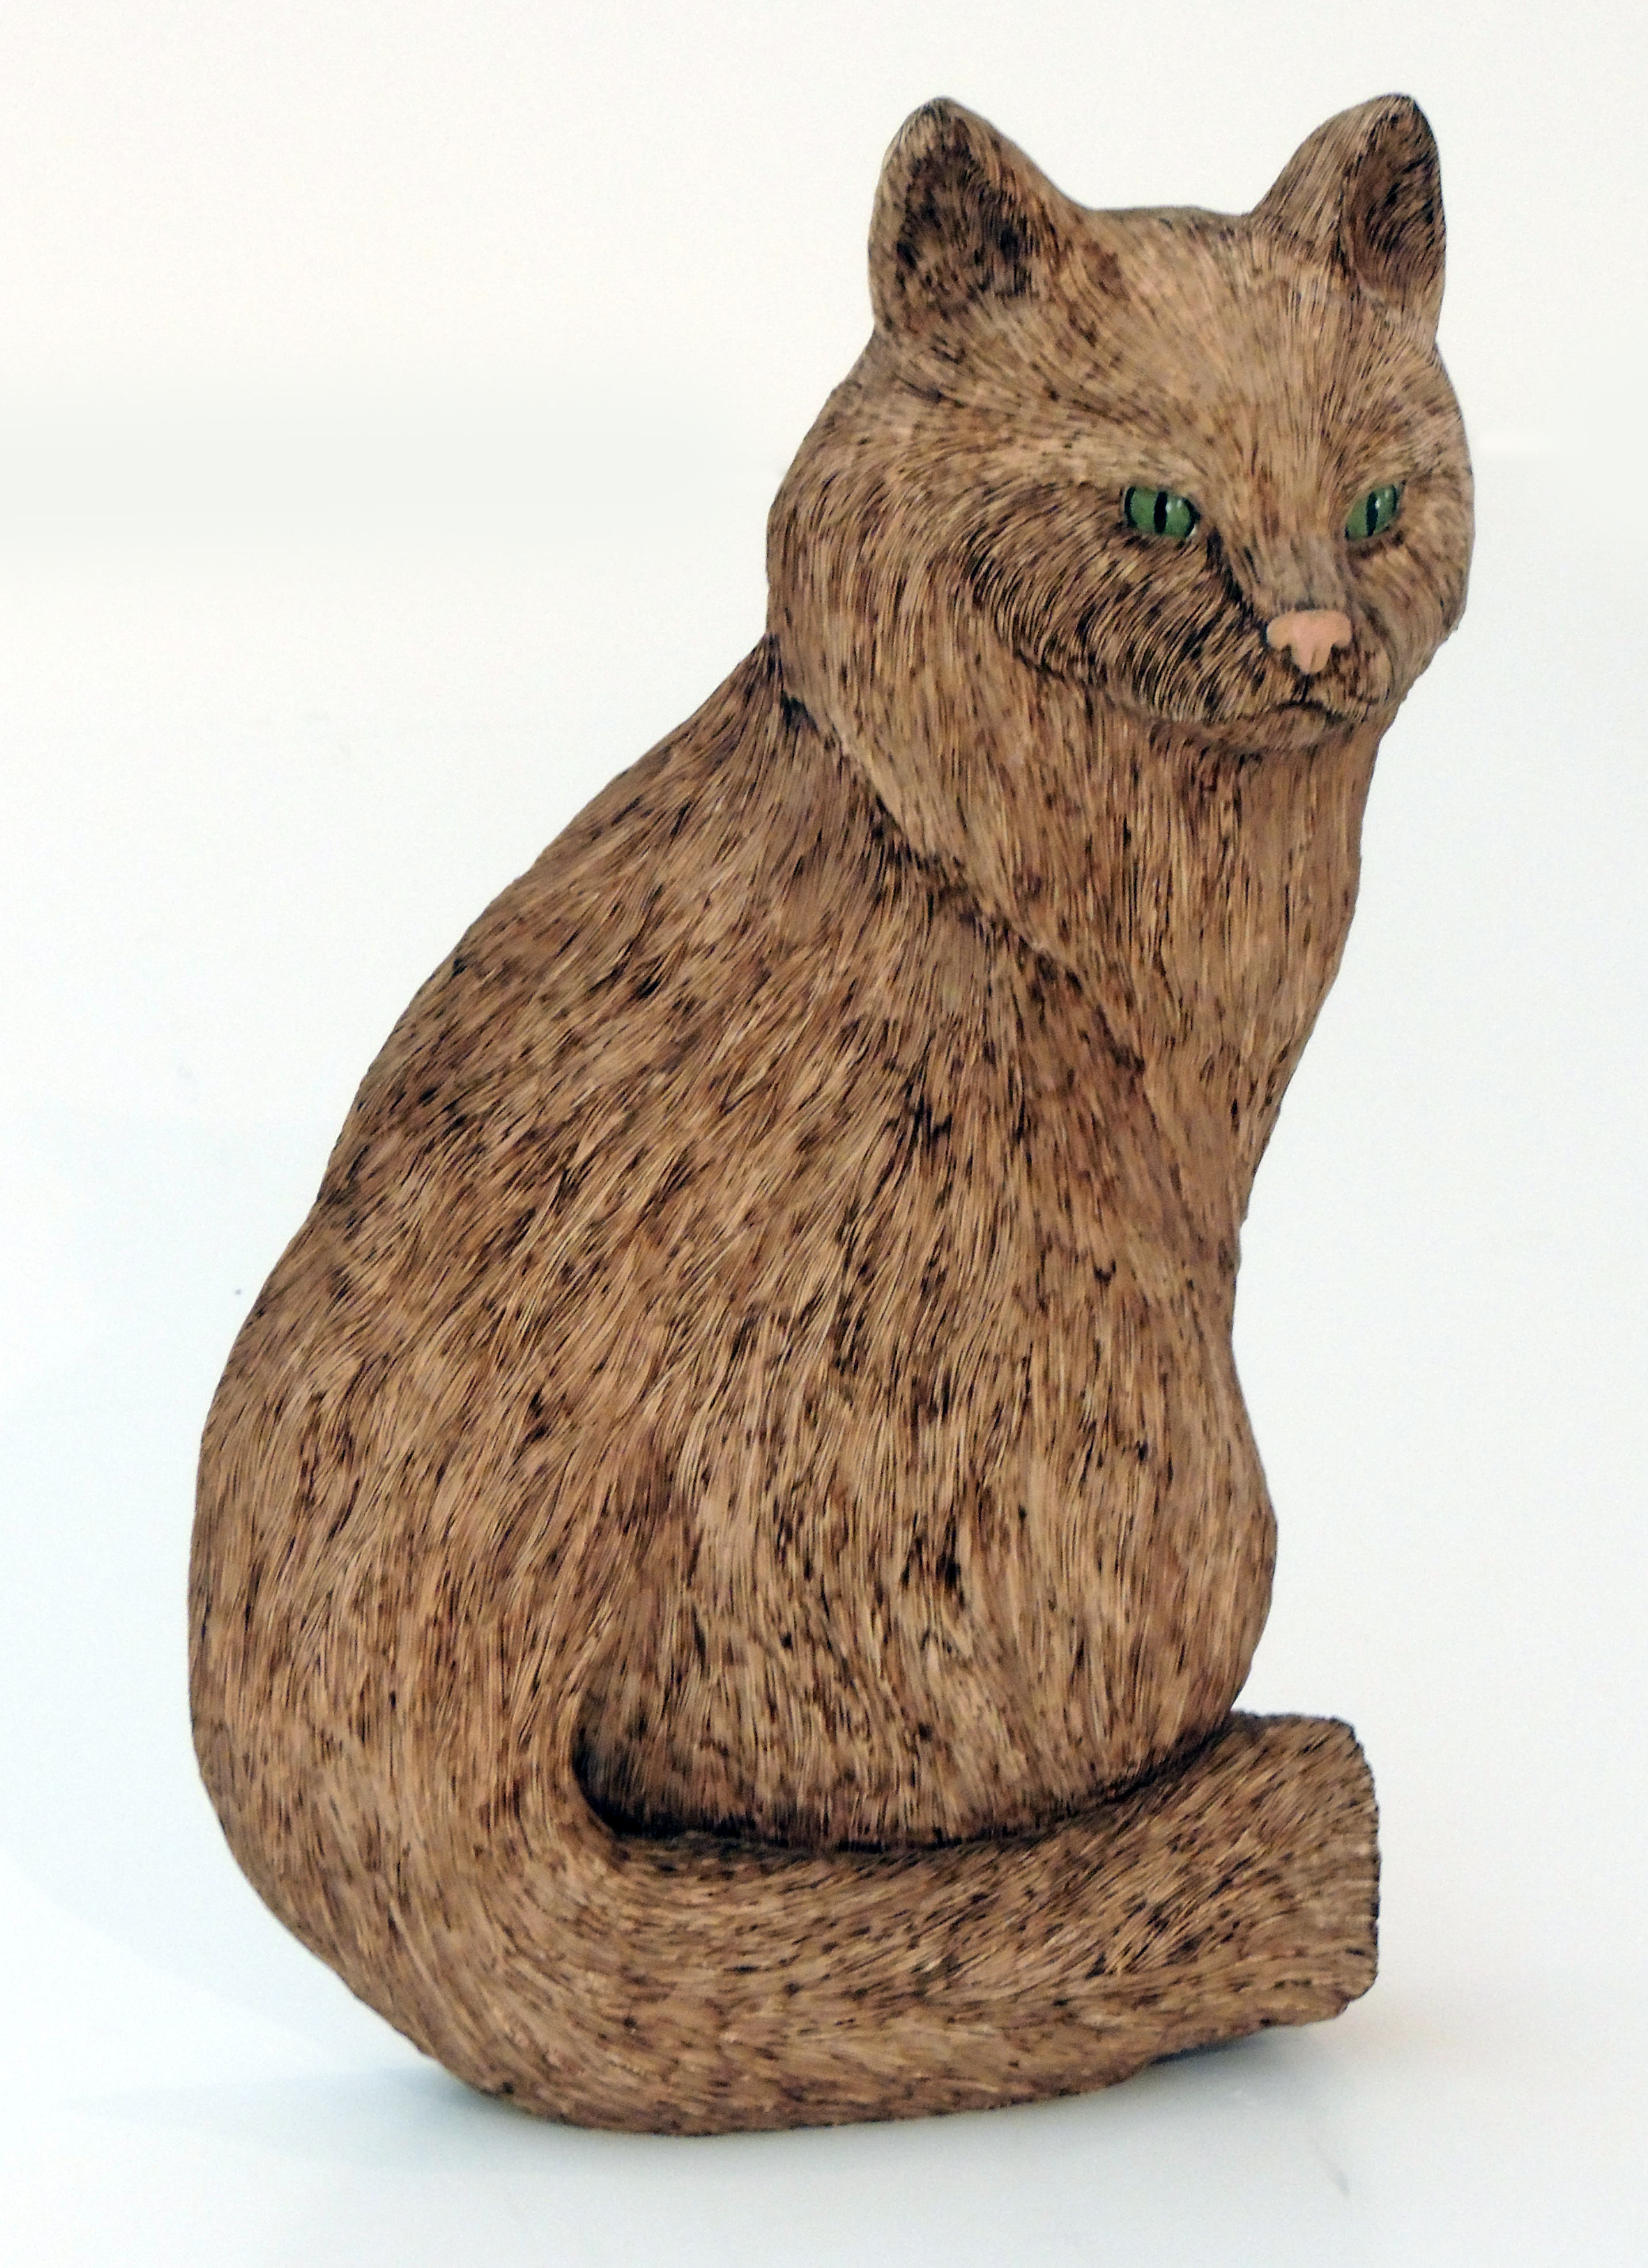 Rob Liptak | LE CHAT | Carved Basswood/Acrylic